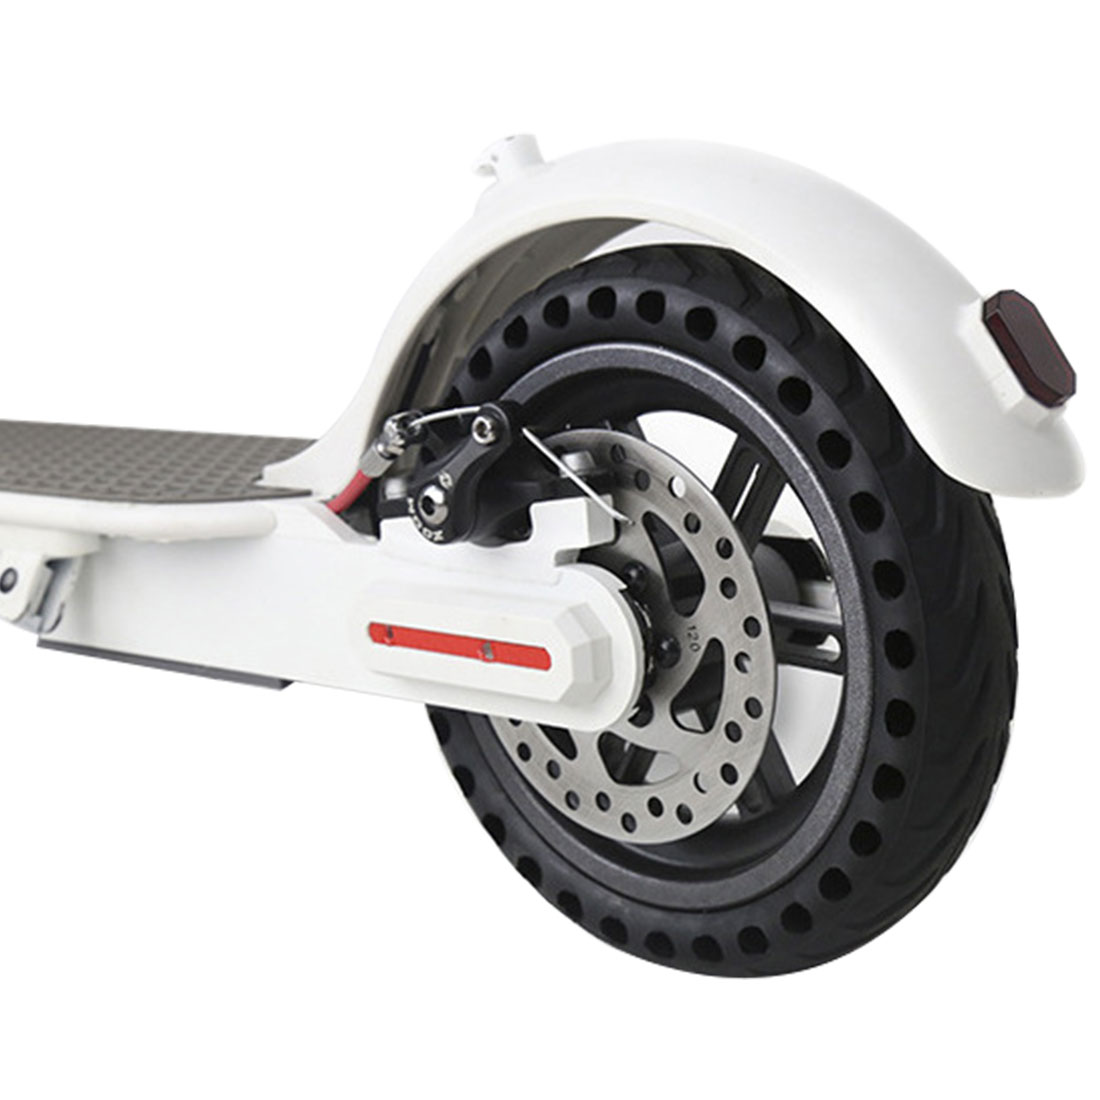 Durable Solid Hole Rubber Tires Shock Absorber Non Pneumatic Tyre Damping Tyres Wheels for Xiaomi Mijia M365 Scooter Skateboard